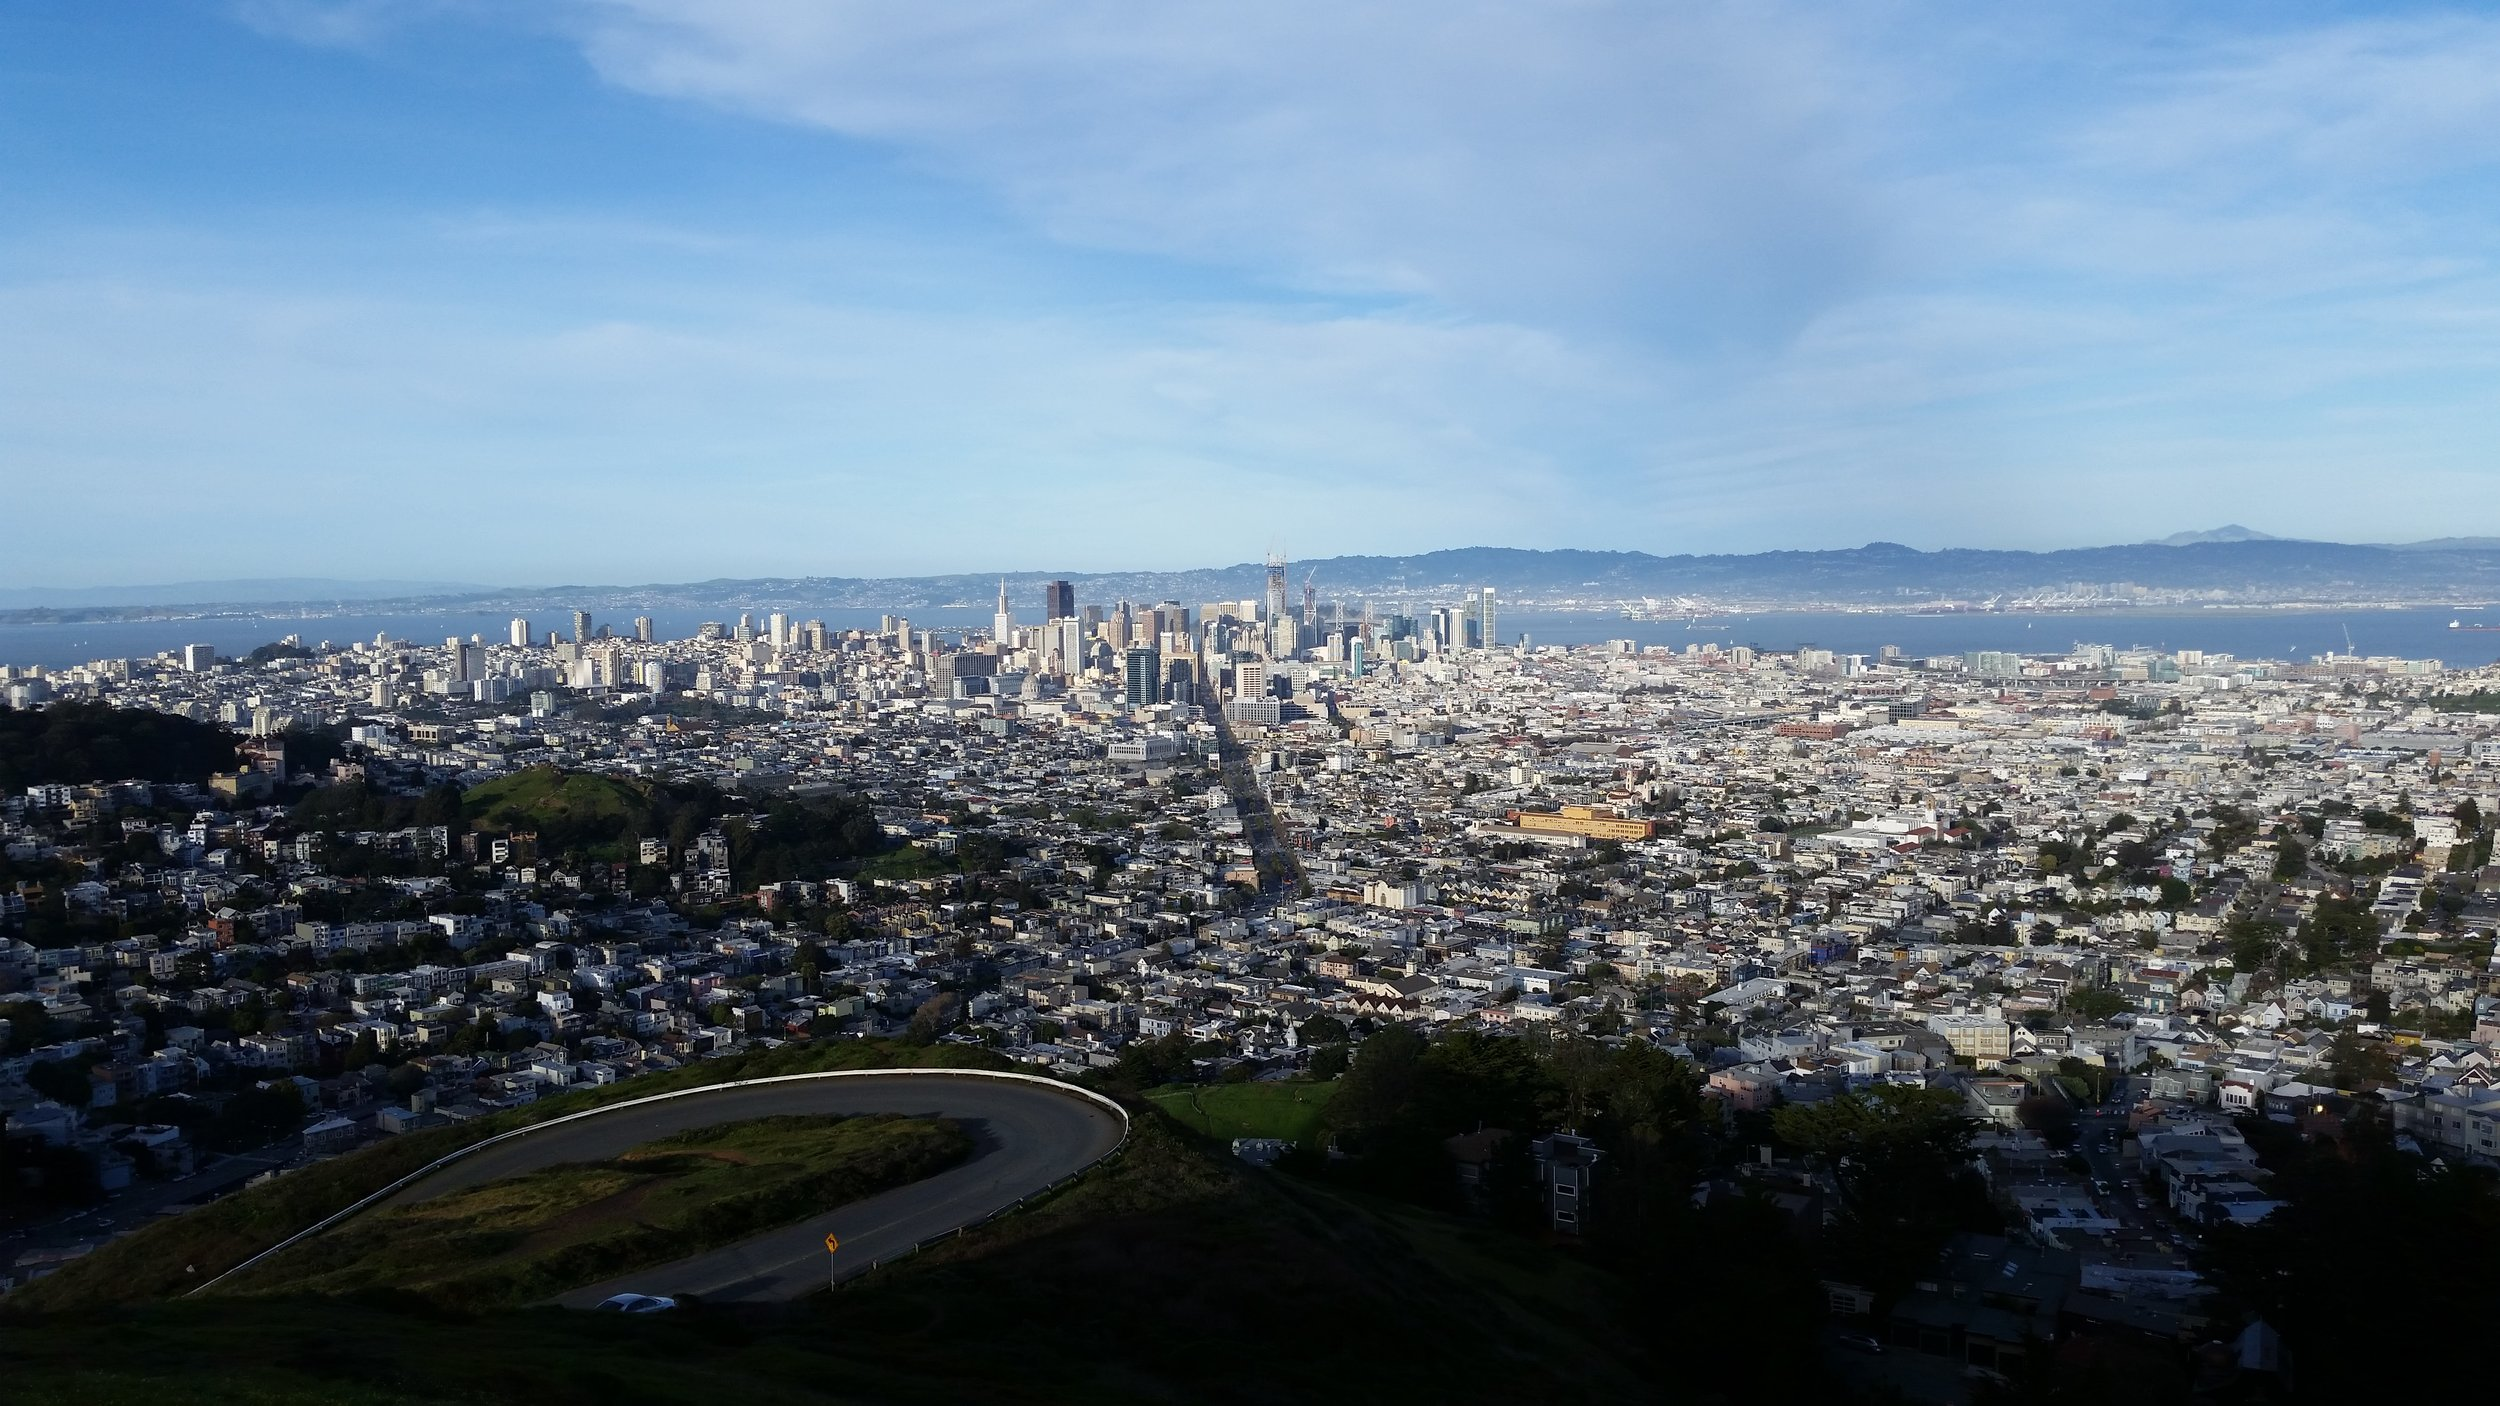 Twin Peaks   Come see the best views of the city from the highest point in San Francisco. From here, you'll be able to see far across the Bay, from the Golden Gate Bridge to Oakland.   More Info On Twin Peaks Here